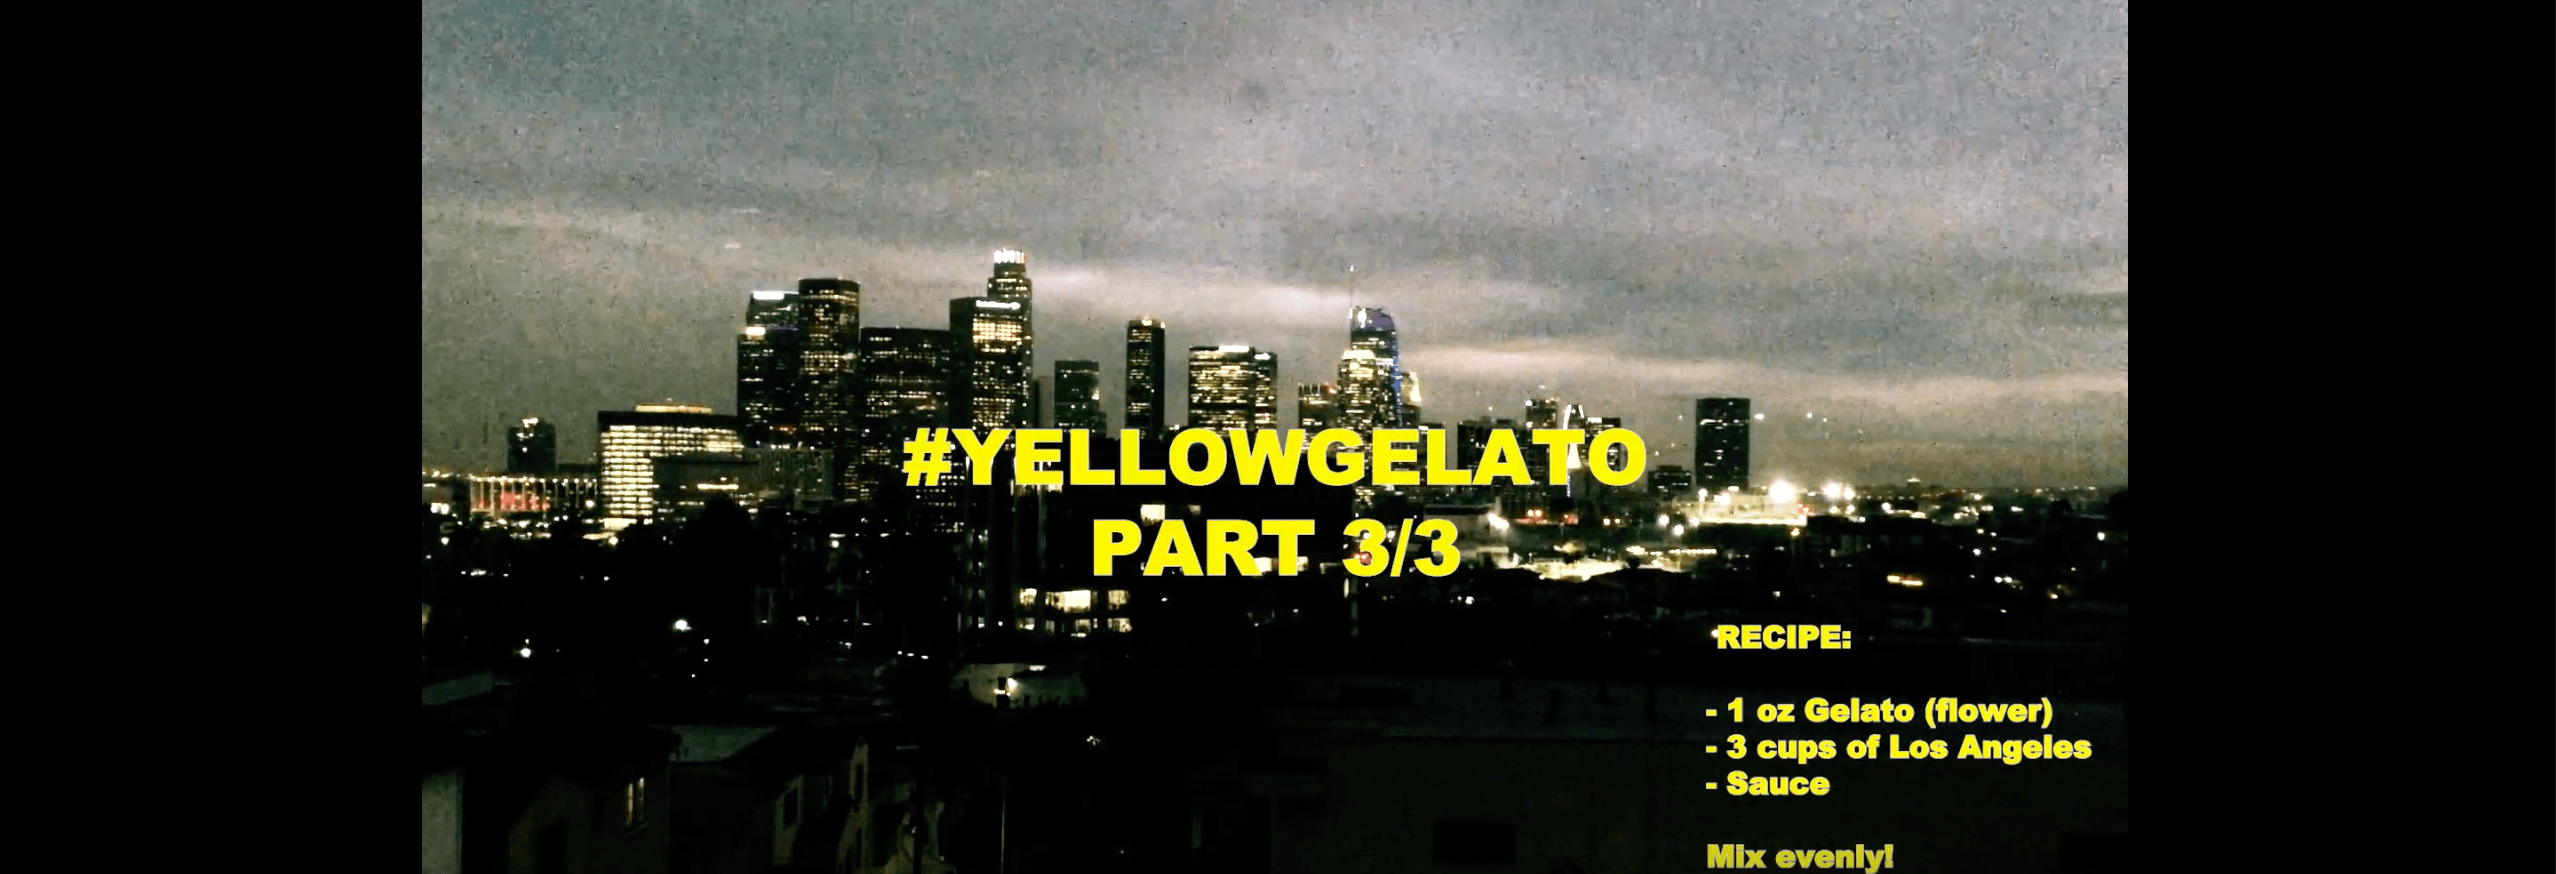 Yellowgelato Part 3 Hot Tonite In The City